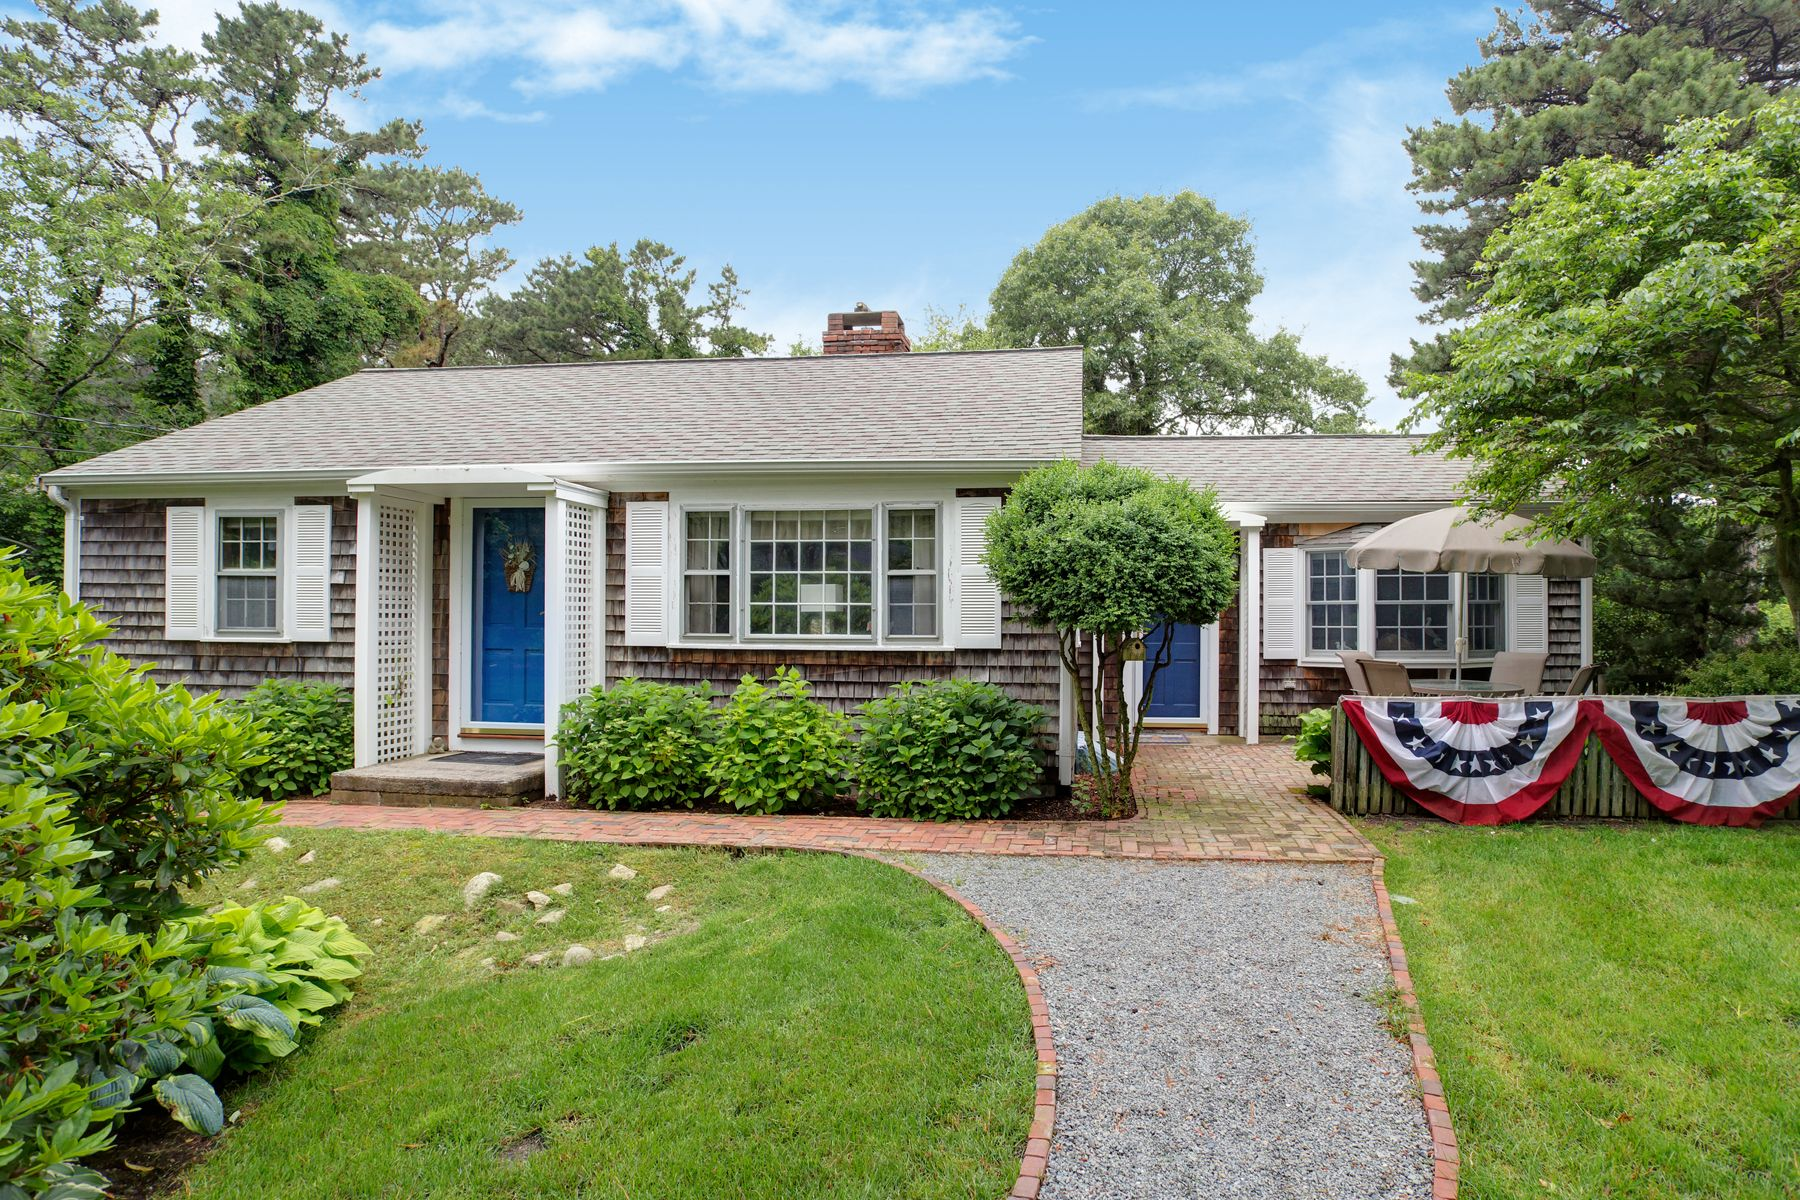 Single Family Homes for Sale at 39 Wing Boulevard West East Sandwich, Massachusetts 02537 United States